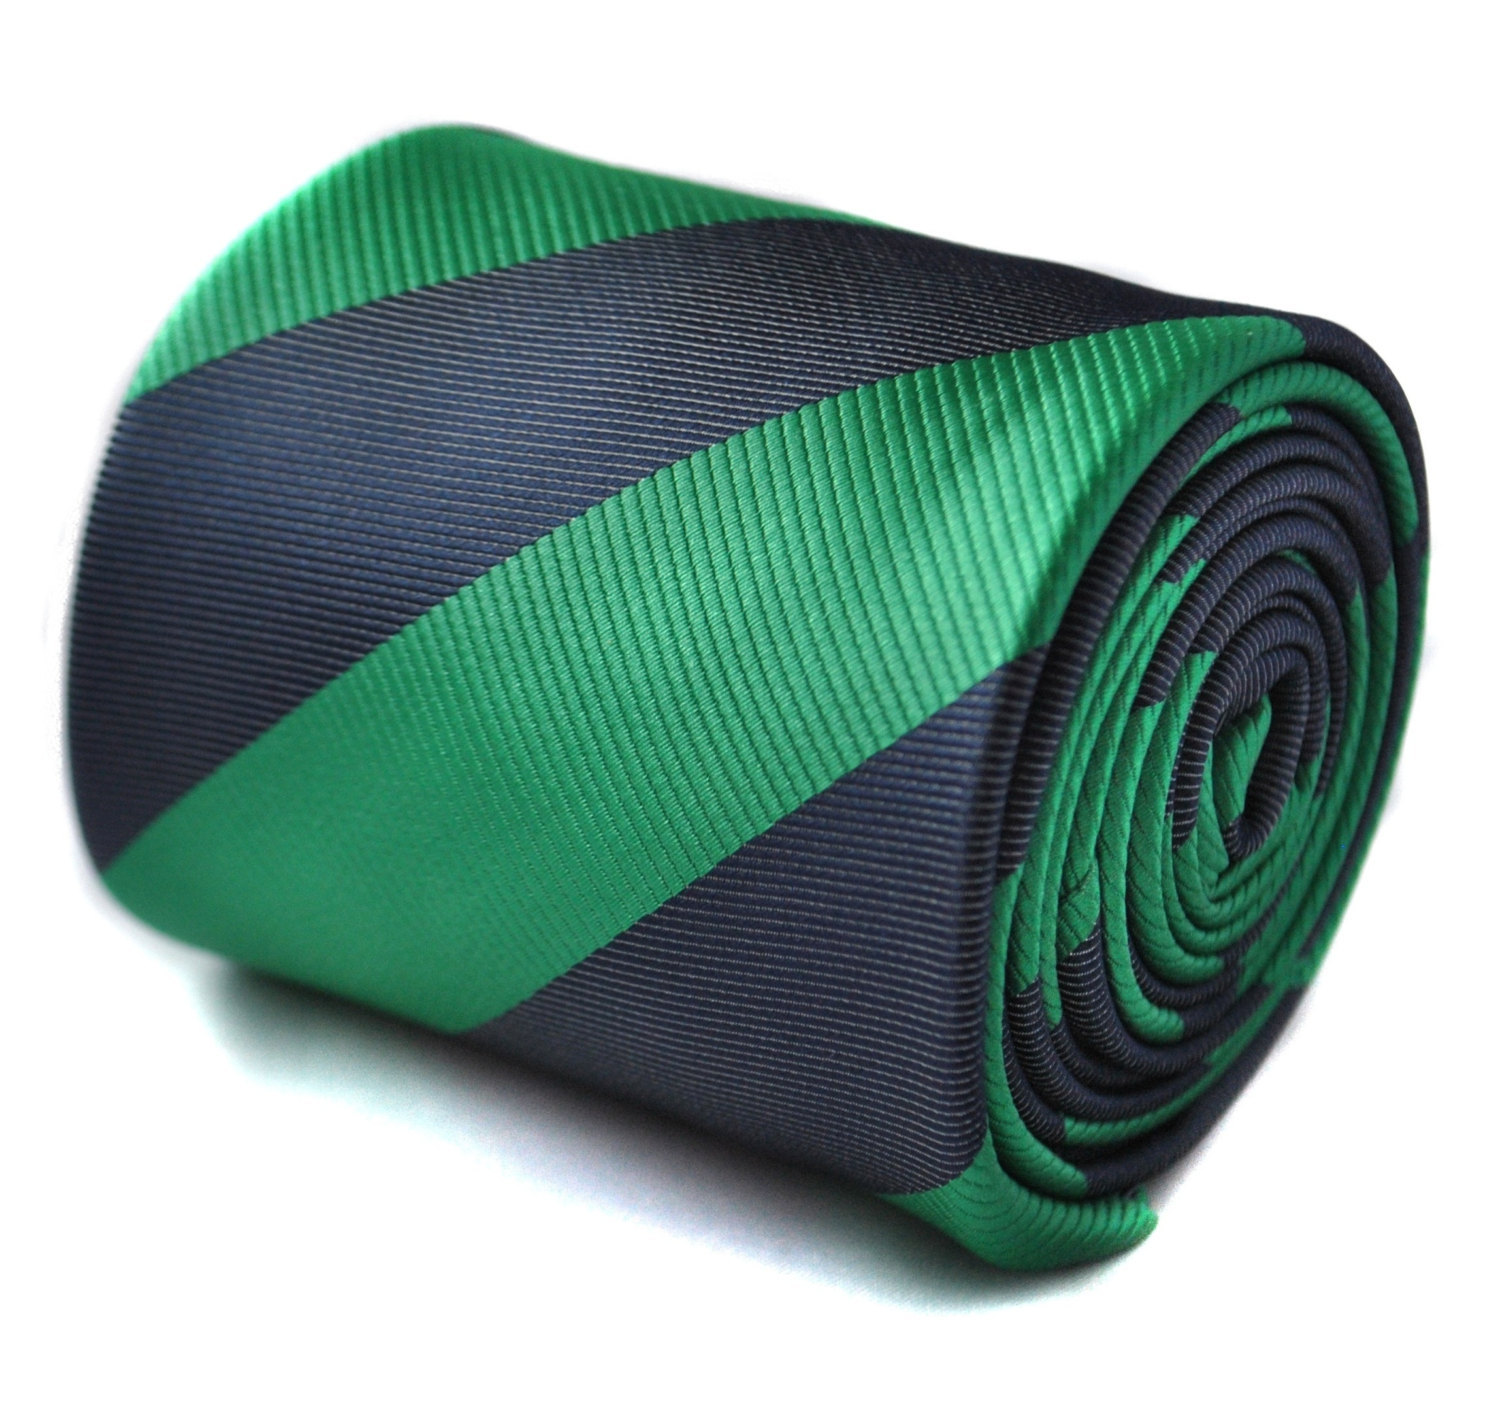 dark green and navy blue barber striped tie with floral design to the rear by Fr